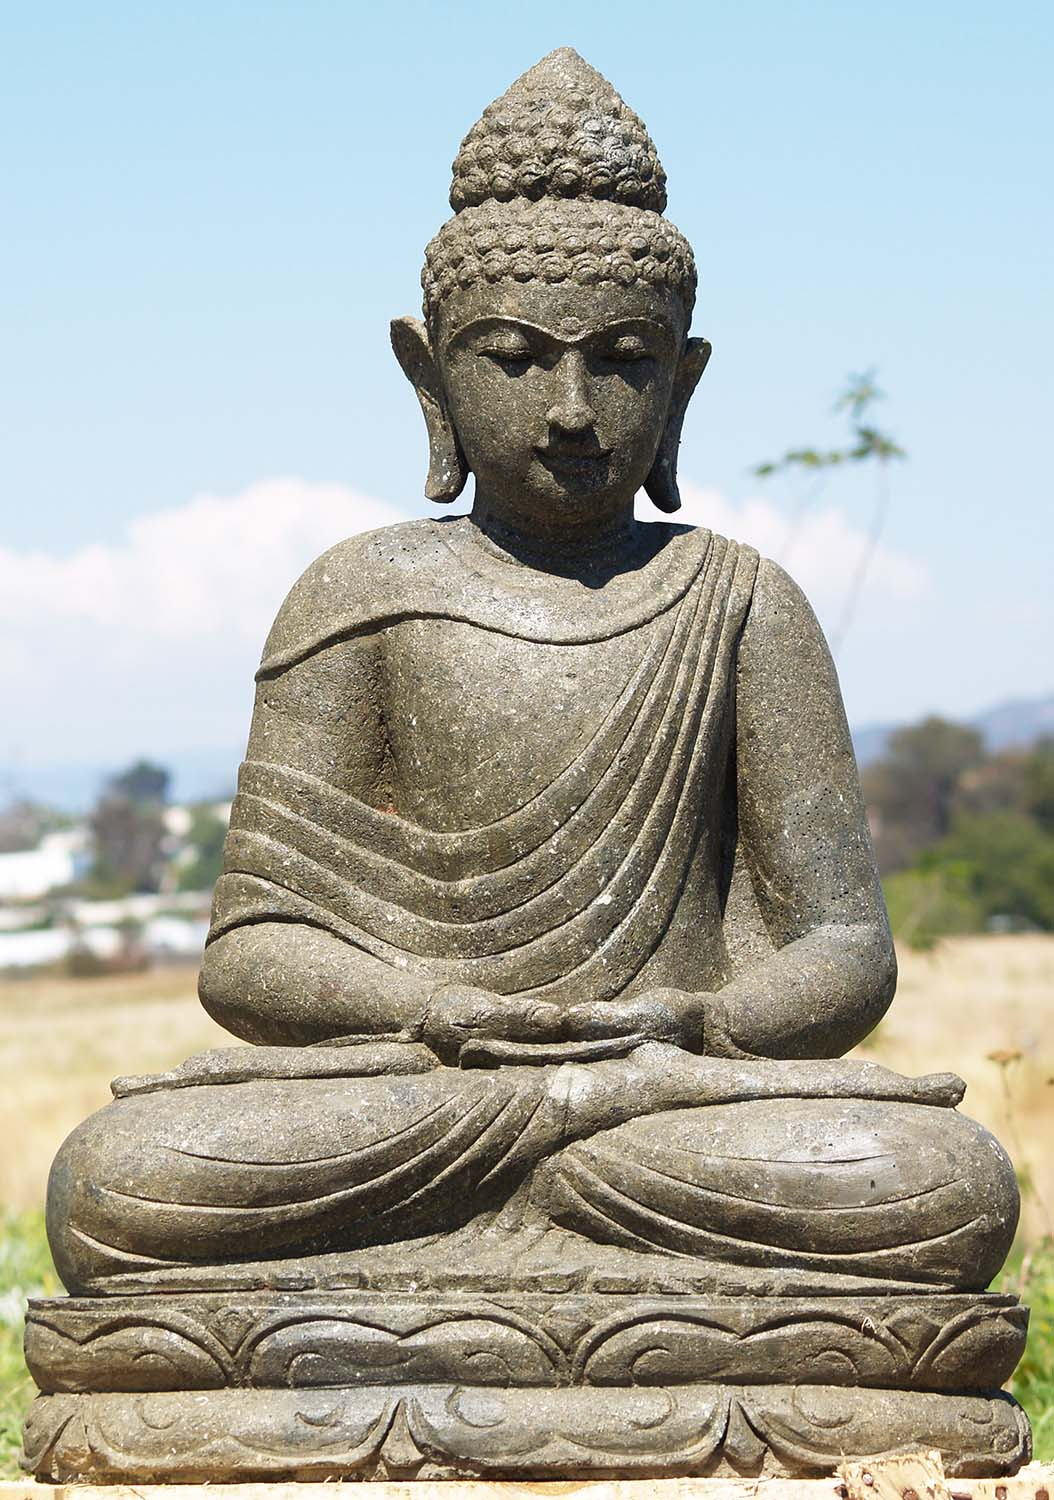 sold stone meditating buddha garden statue 34 86ls197. Black Bedroom Furniture Sets. Home Design Ideas